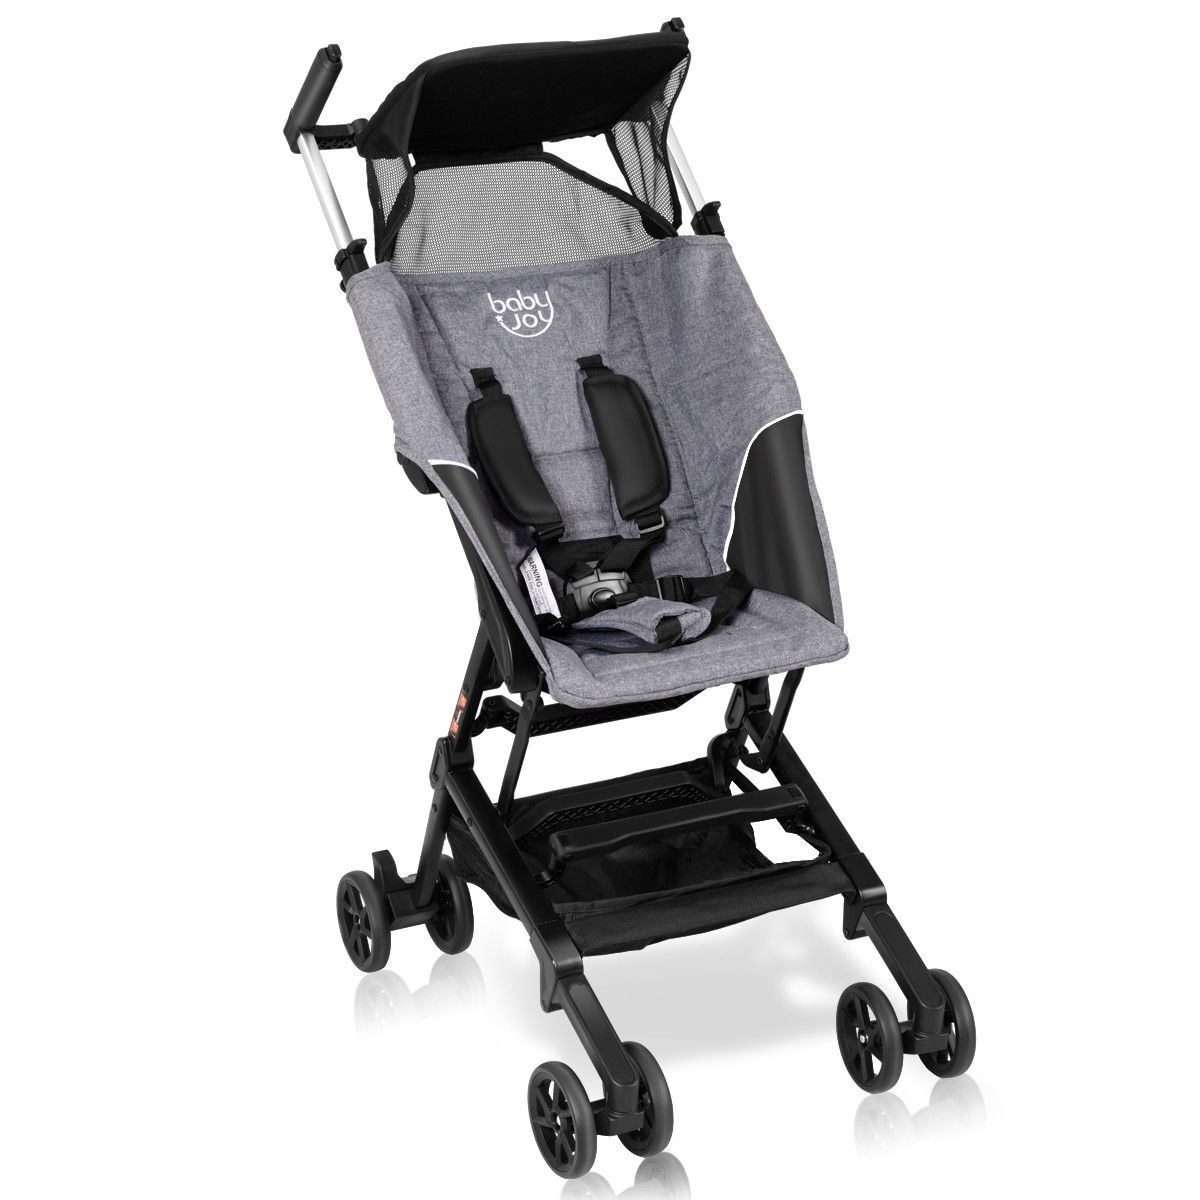 Costway Buggy Portable Pocket Compact Lightweight Stroller Easy Handling Folding Travel by Costway